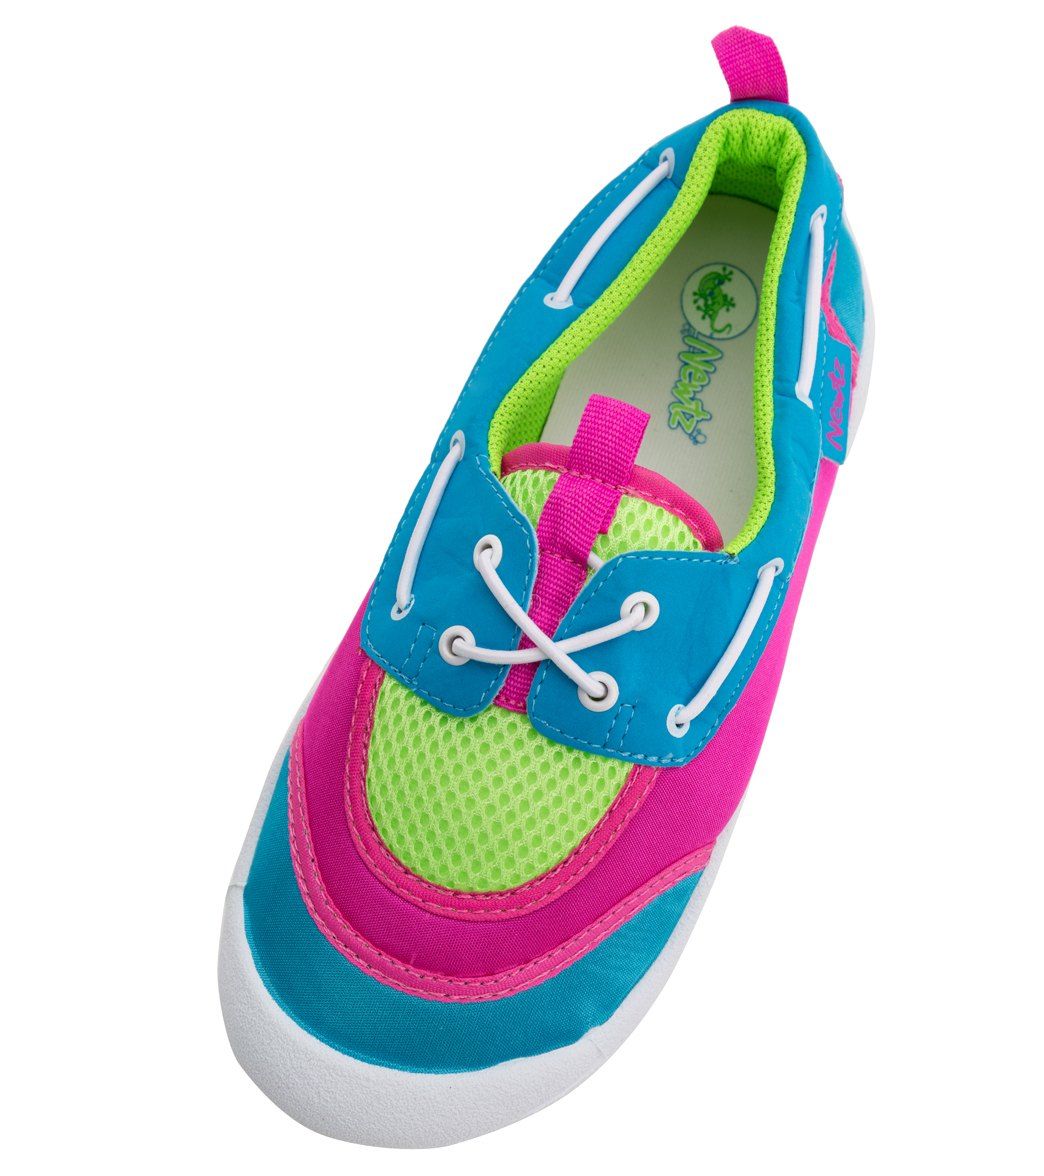 39d7e2a0265f Newtz Girls  Sider Water Shoes at SwimOutlet.com